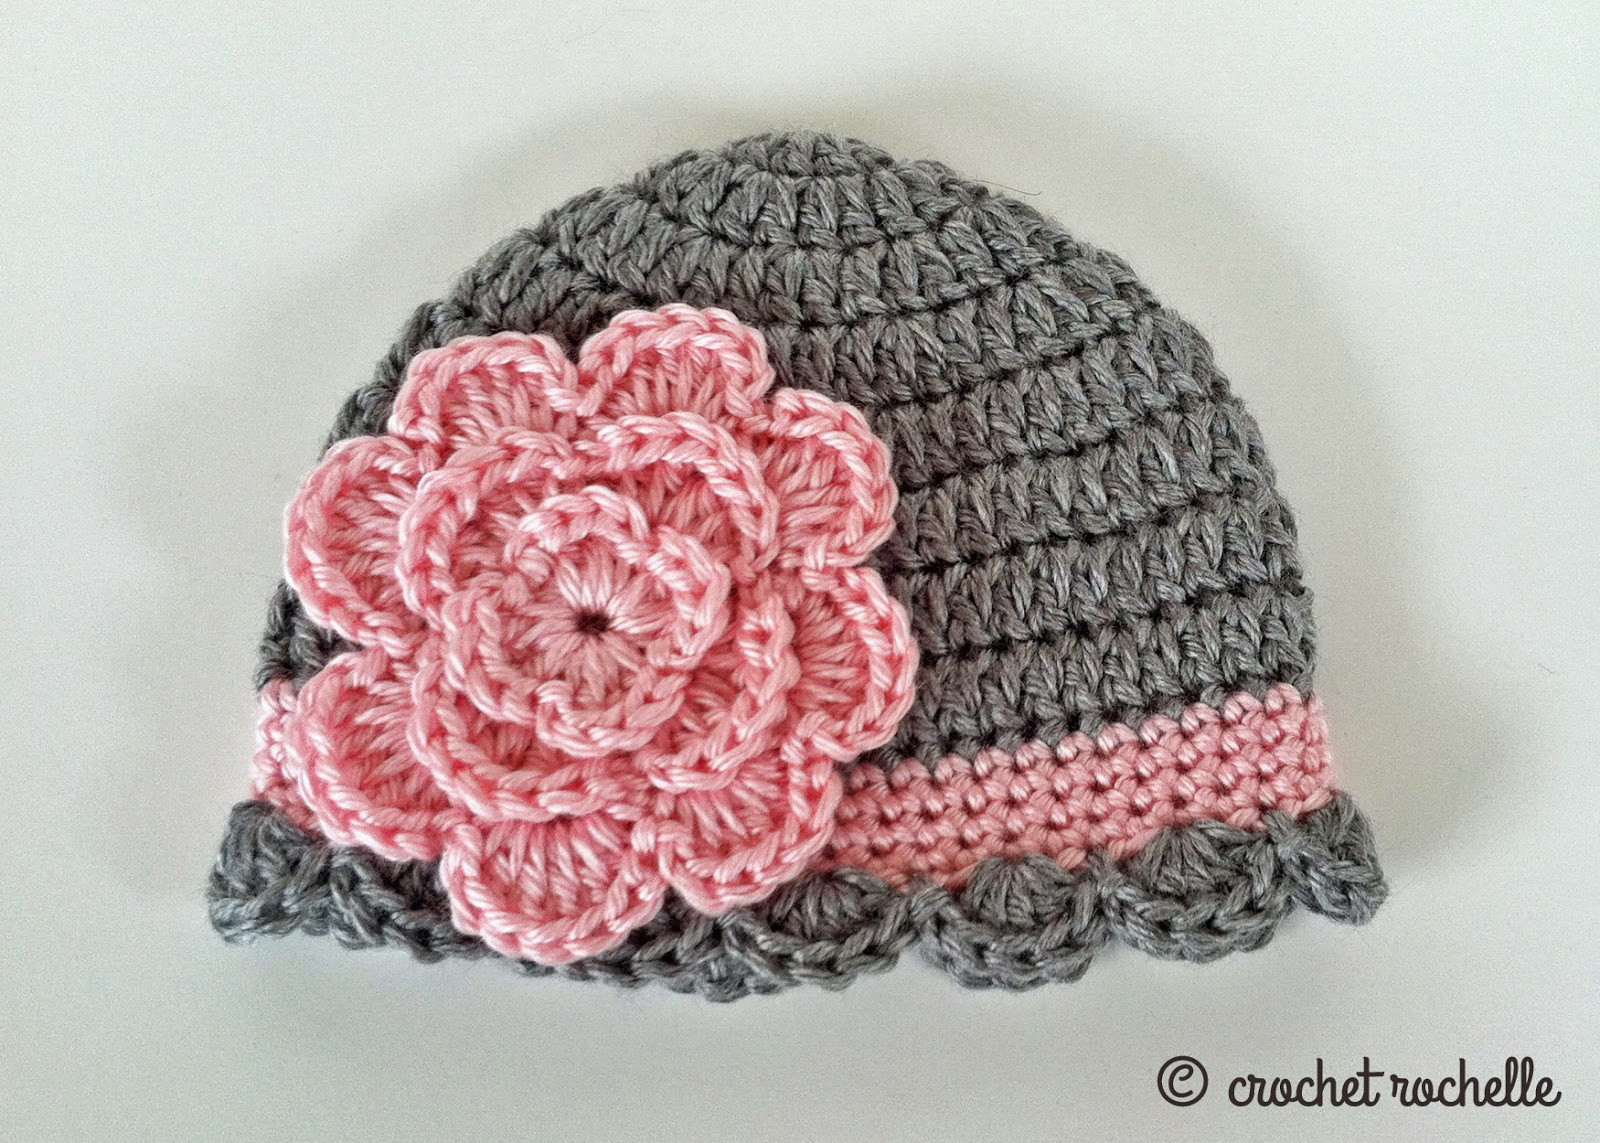 Best Of Crochet Rochelle Pretty Baby Beanie Crochet Baby Beanie Free Pattern Of Great 42 Pictures Crochet Baby Beanie Free Pattern